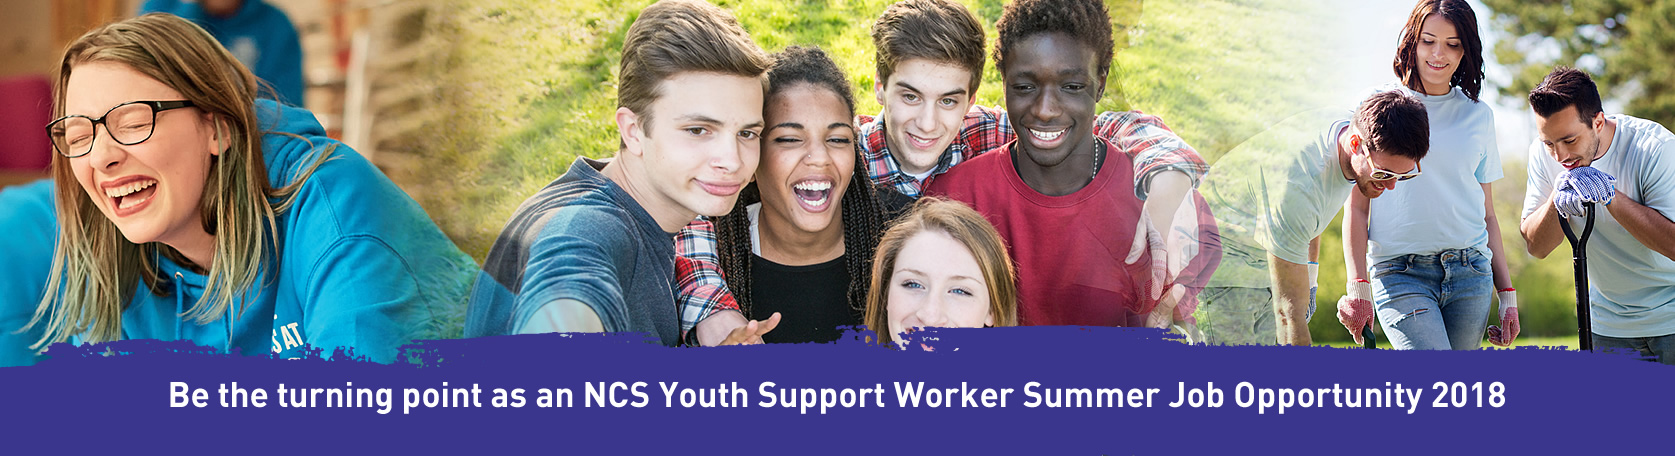 NCS Youth Support Worker